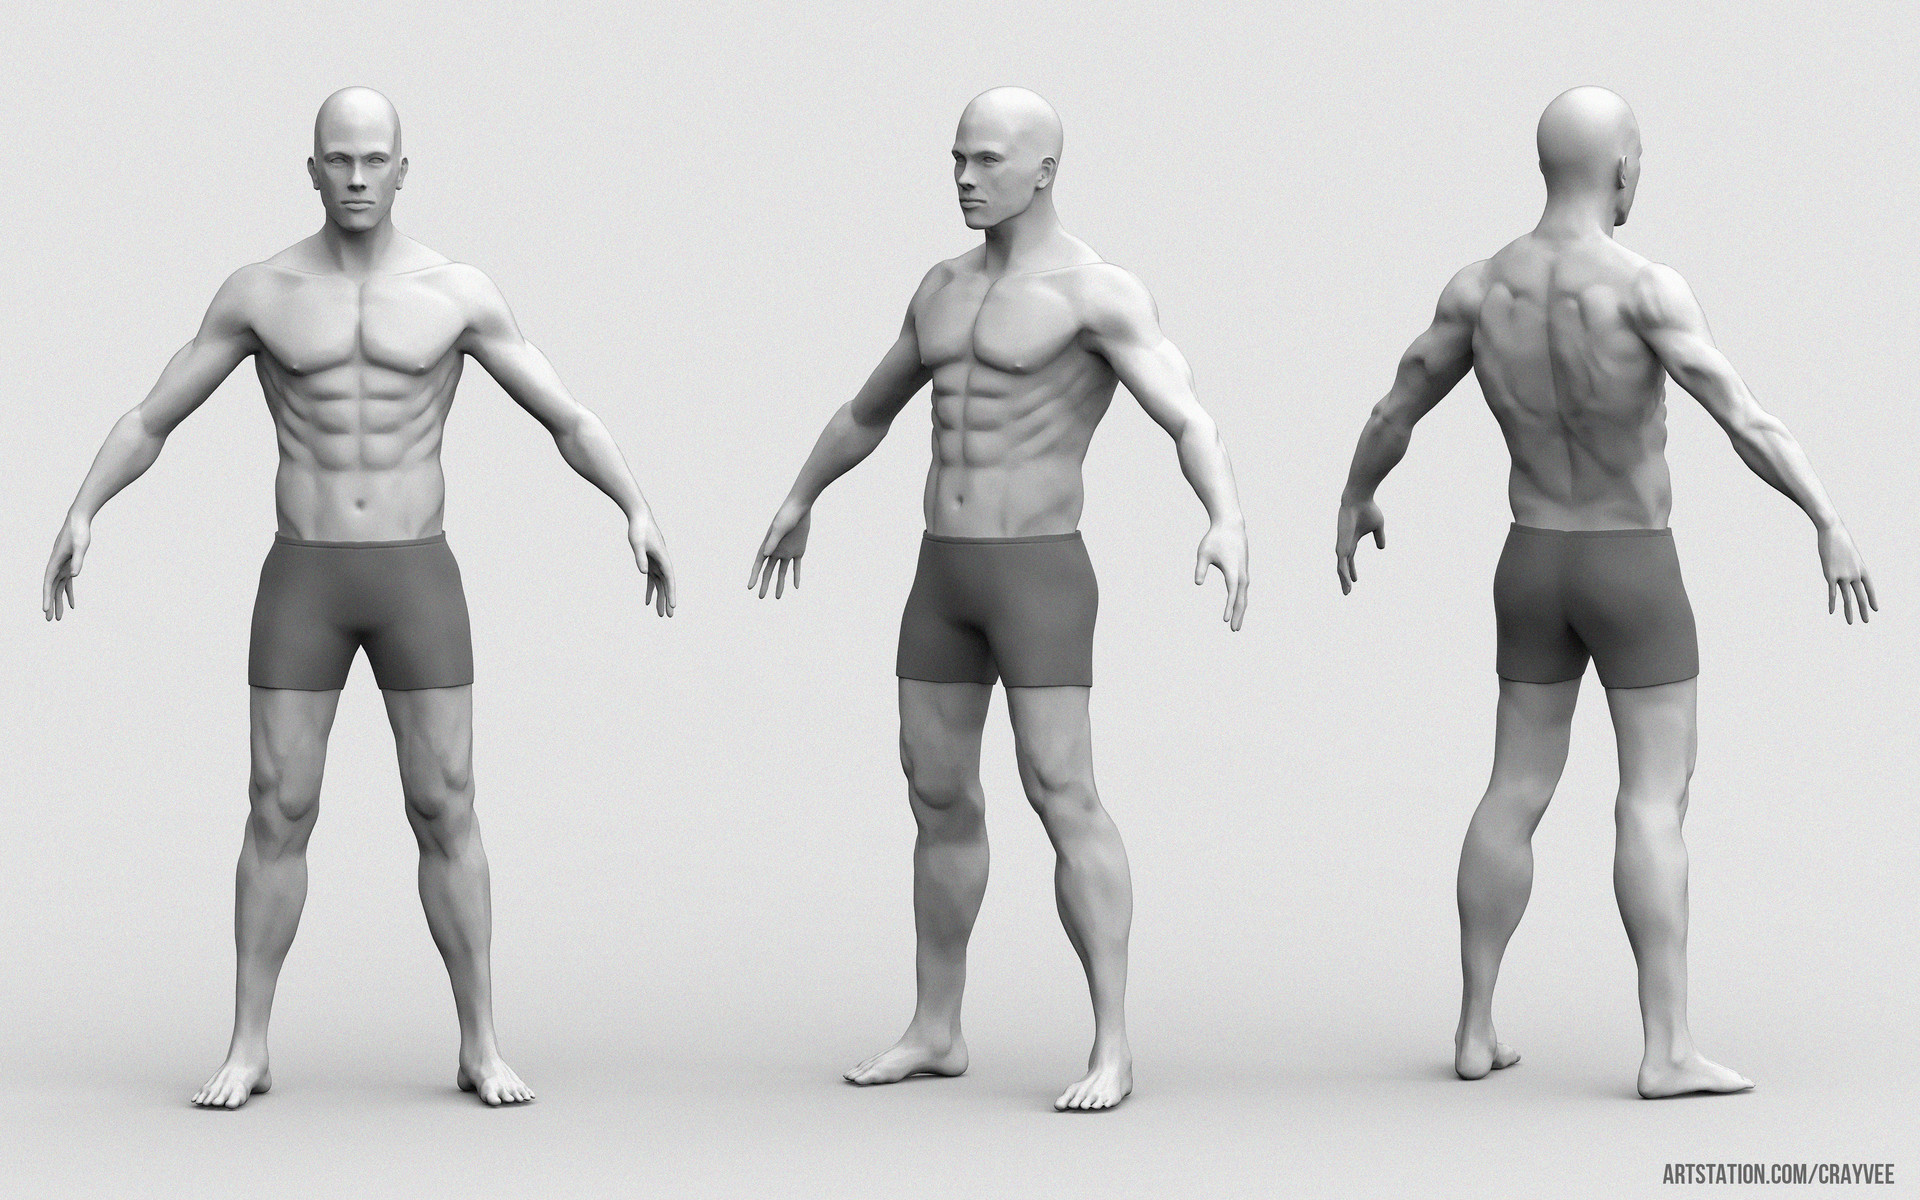 ArtStation - Low Poly Male Anatomy - Marmoset Viewer, Cray Vee